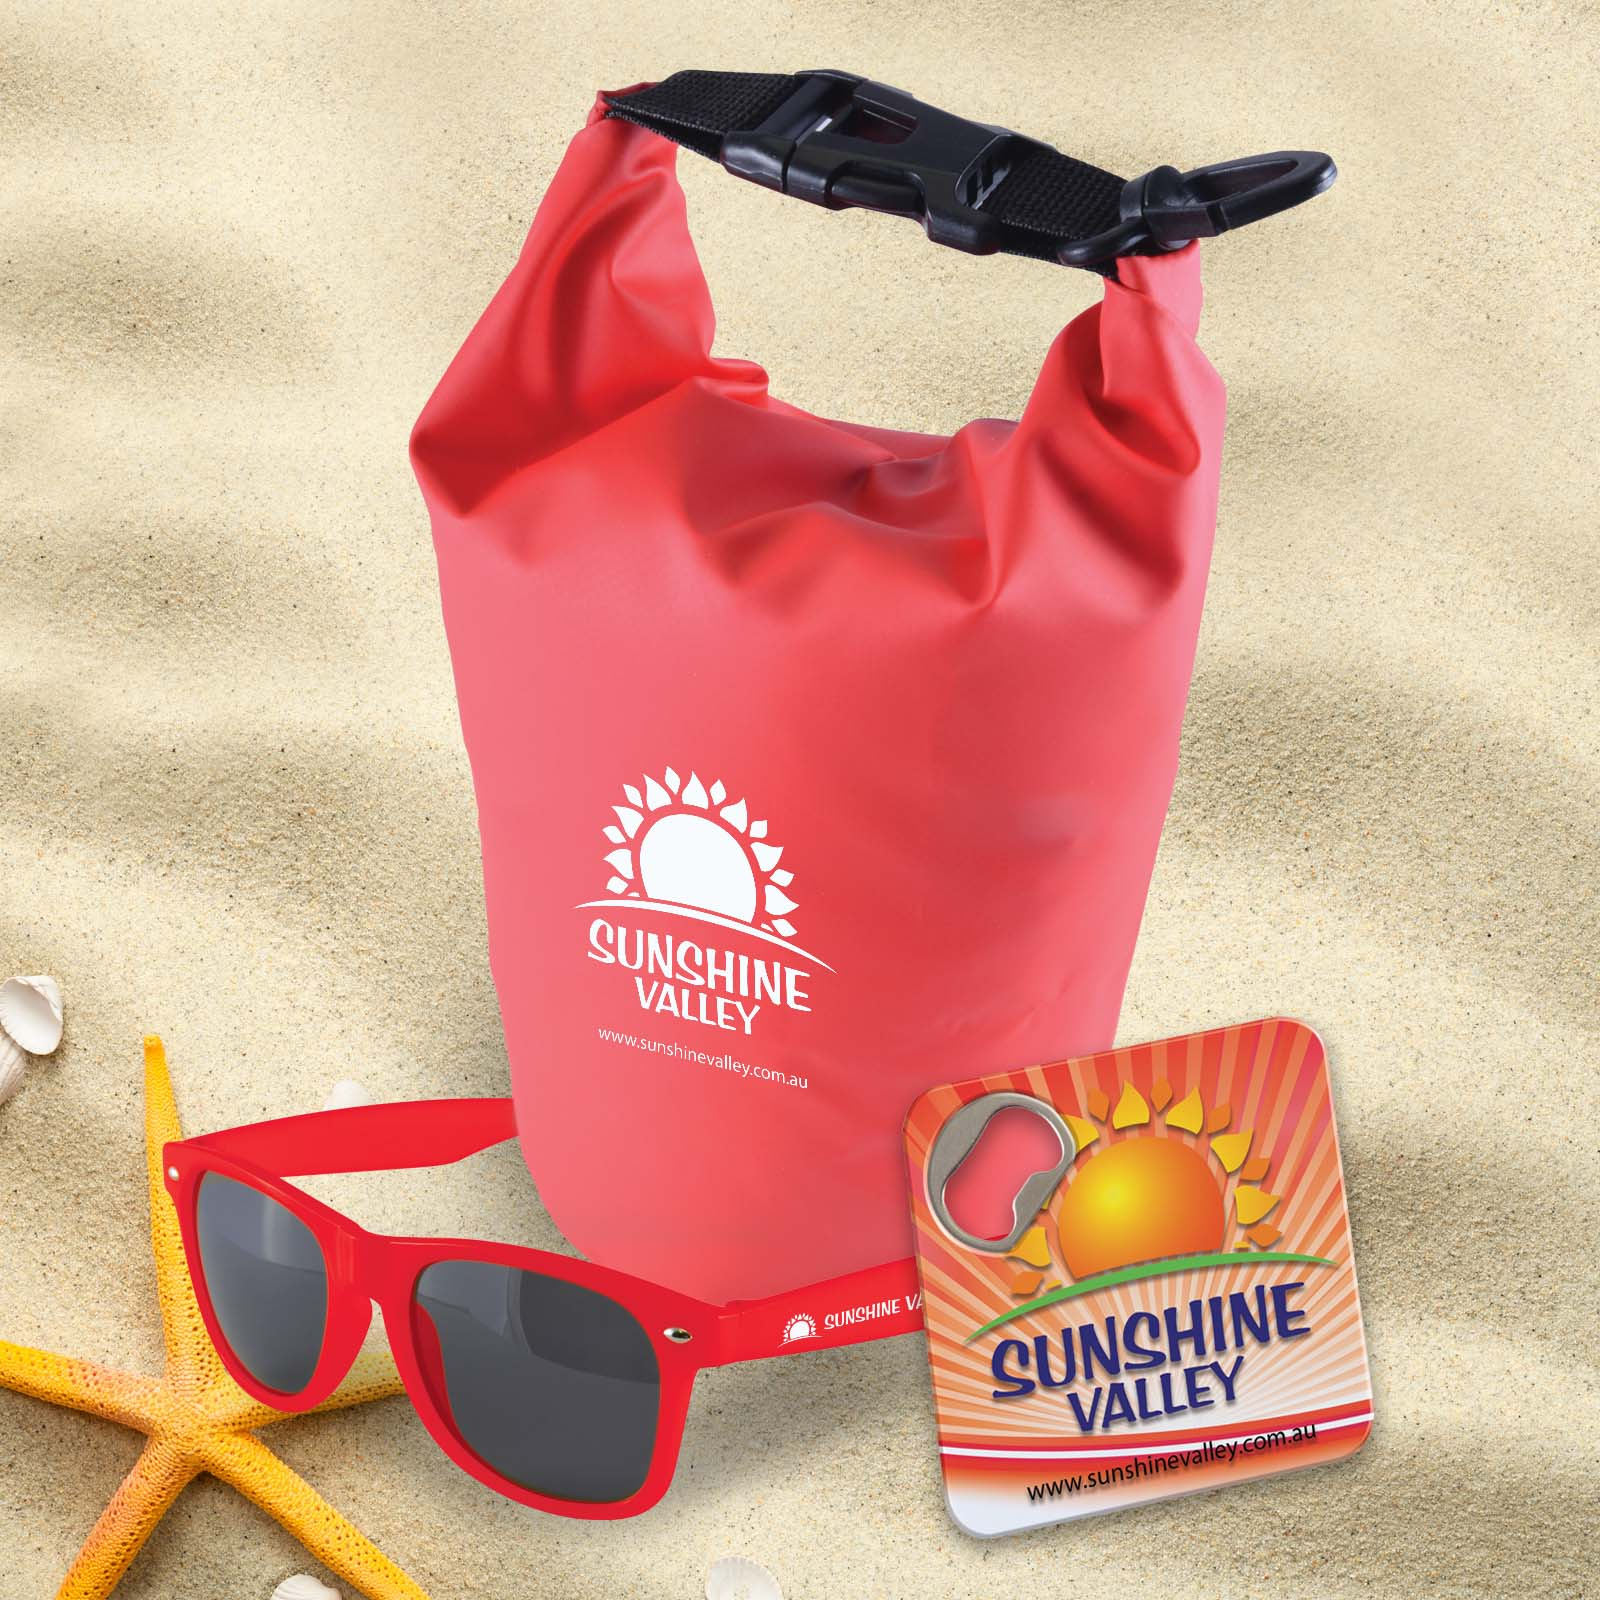 Bondi Beach Kit - 4 Pos Print (1 Screenprint + 2 Pad Print (each arm sunglasses) + 1 Digital Print